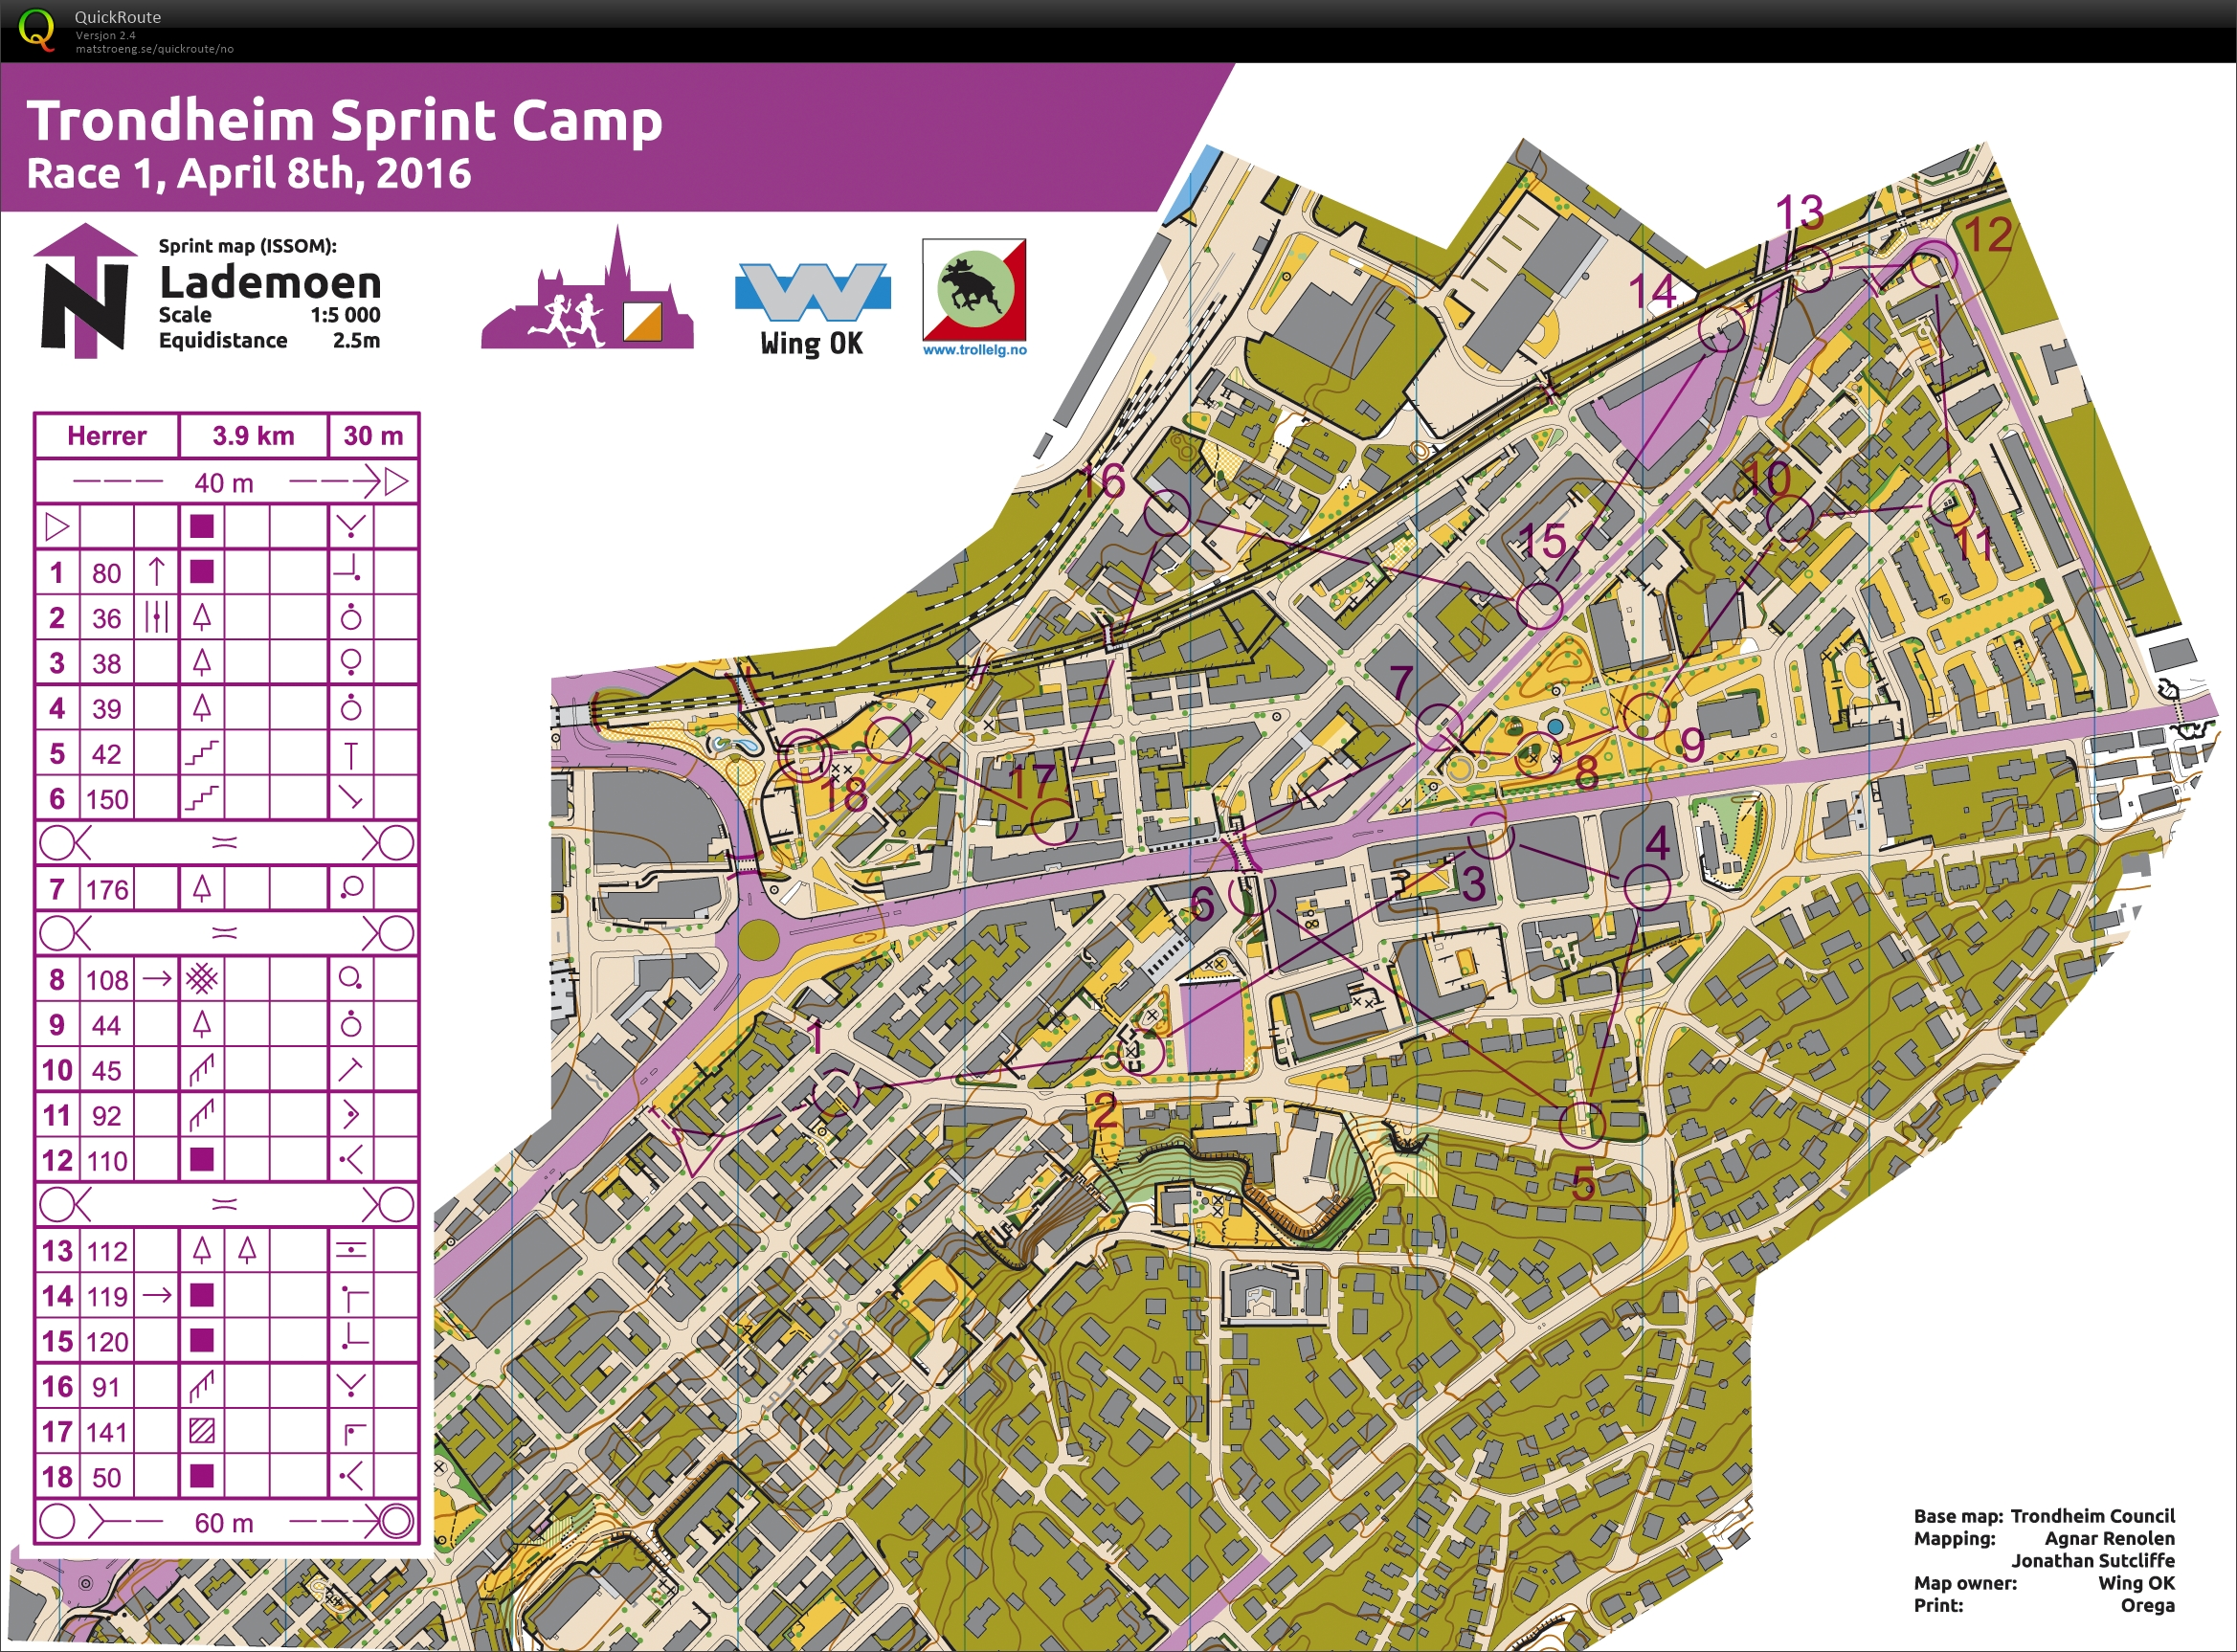 tsc fredagssprint april th  orienteering map. √ tsc maps university of mississippi to purchase  acres within